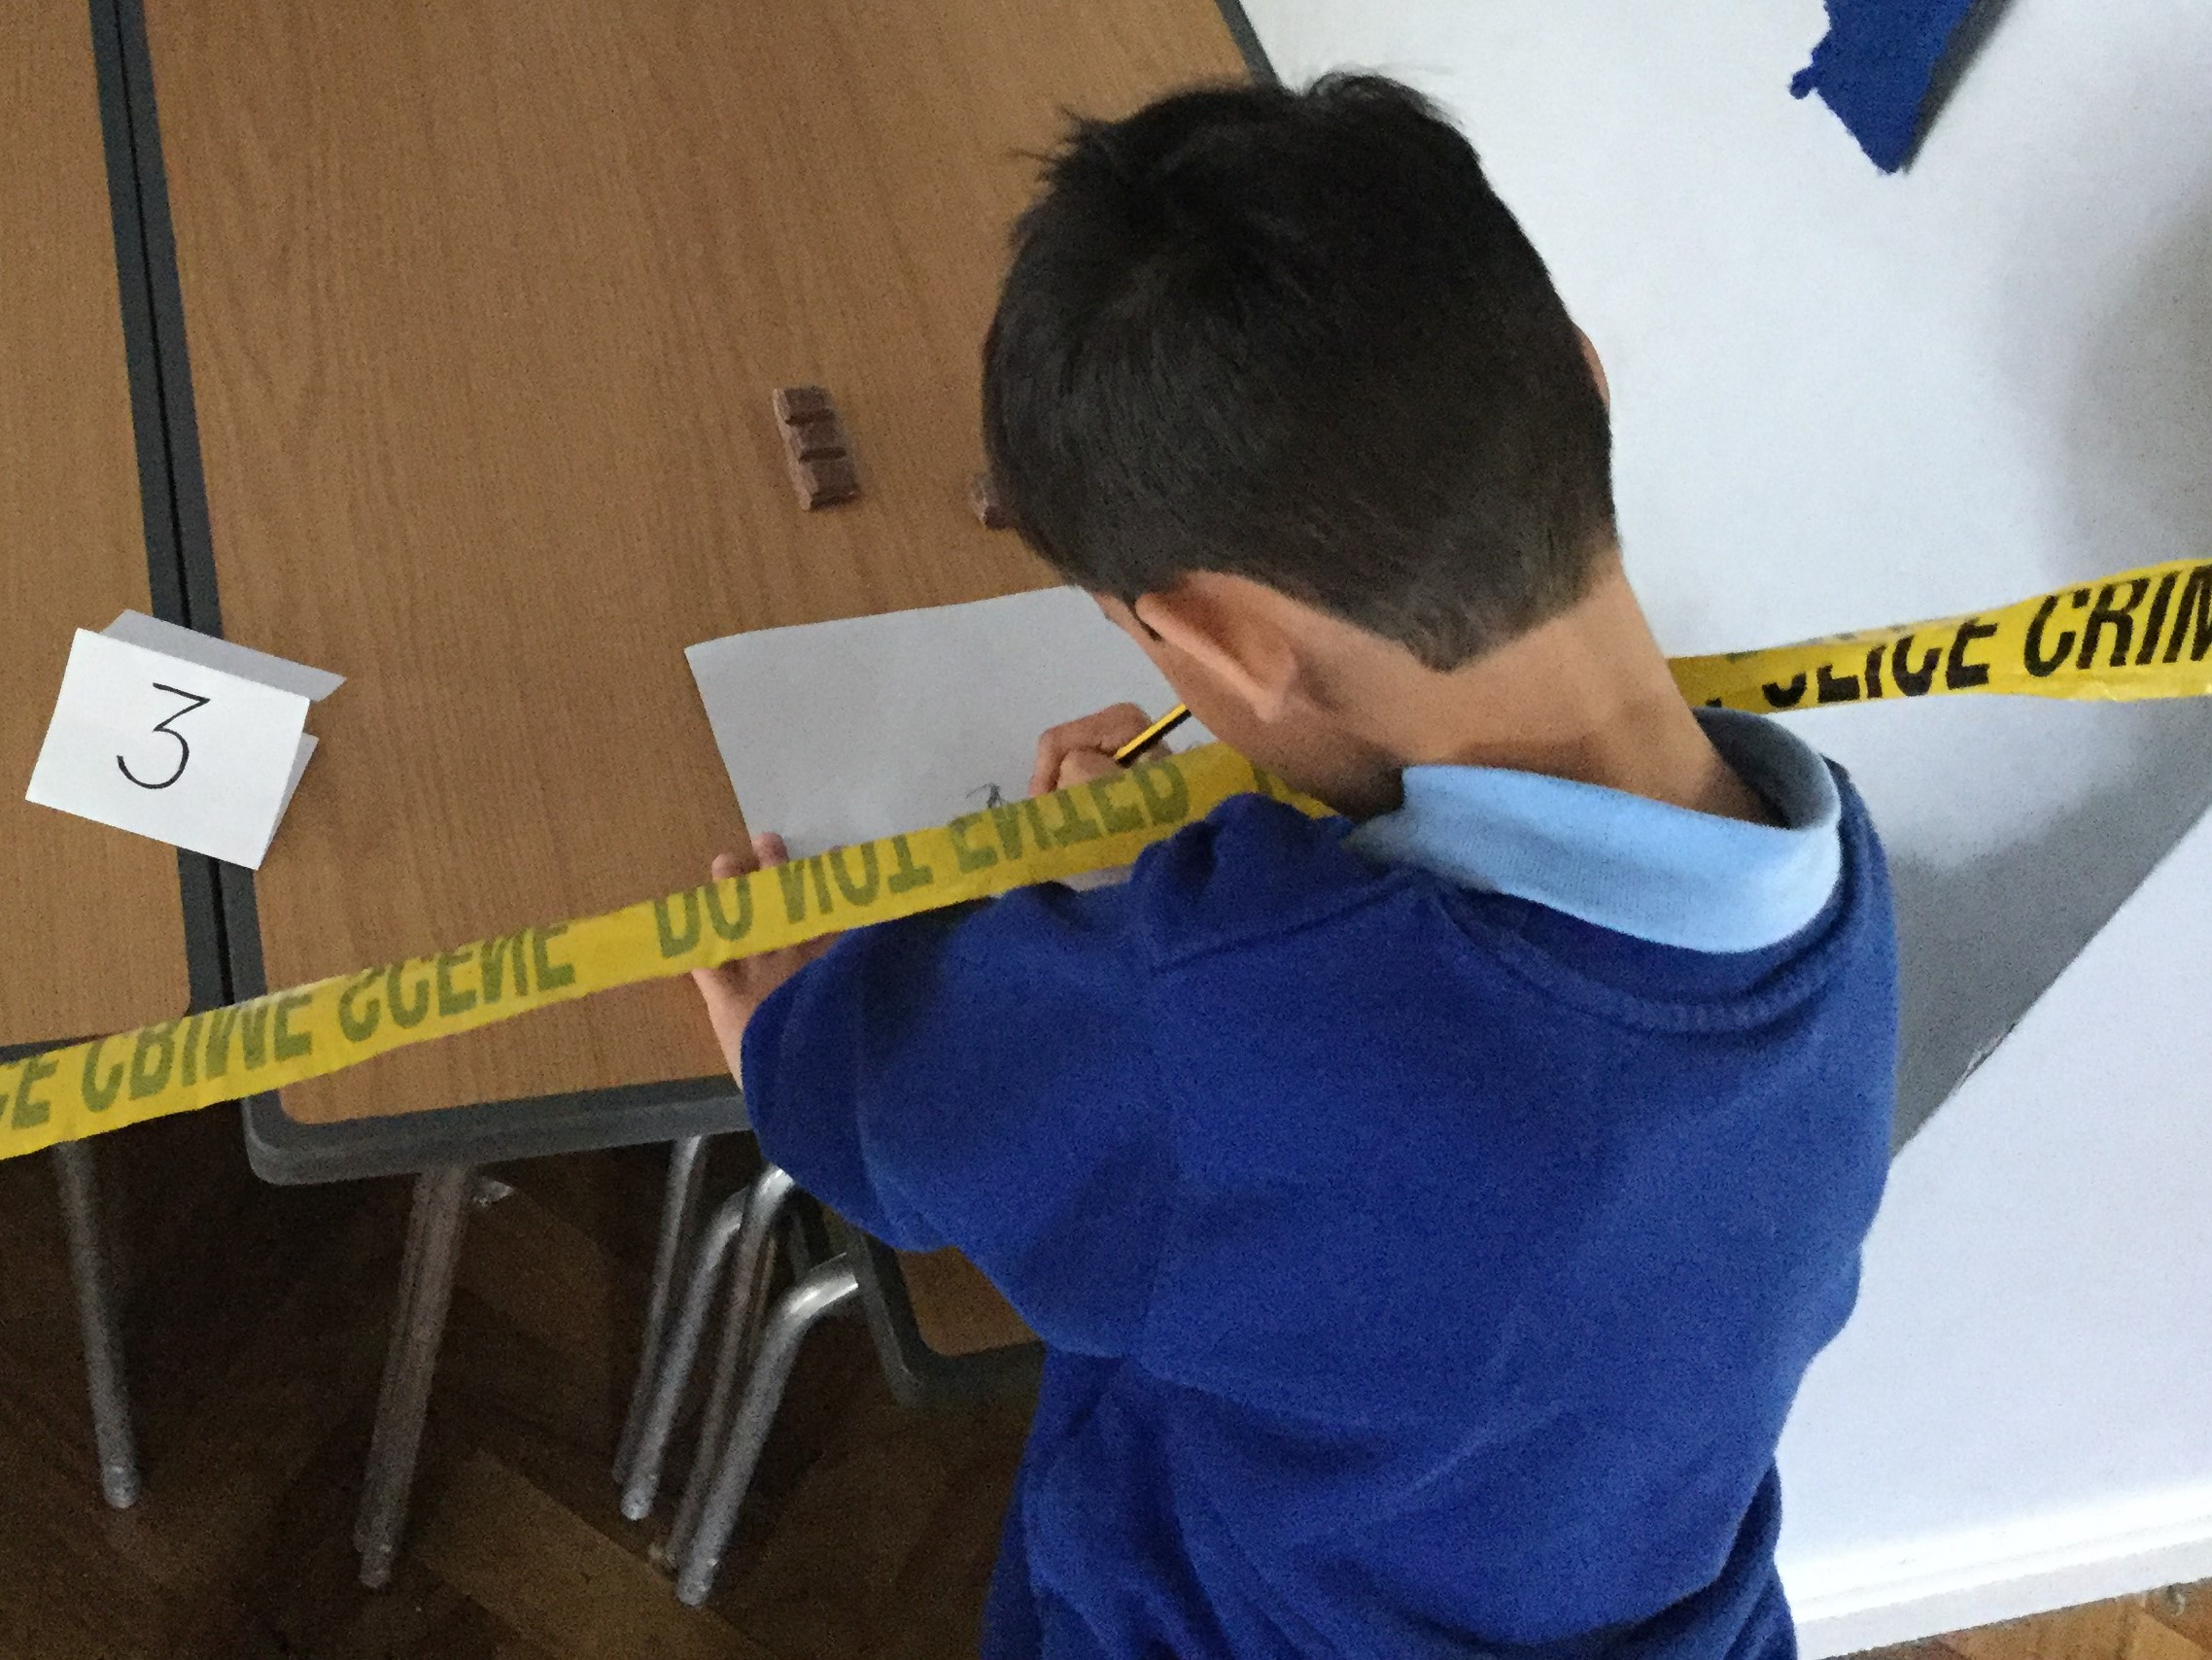 Children investigating the Crime Scene